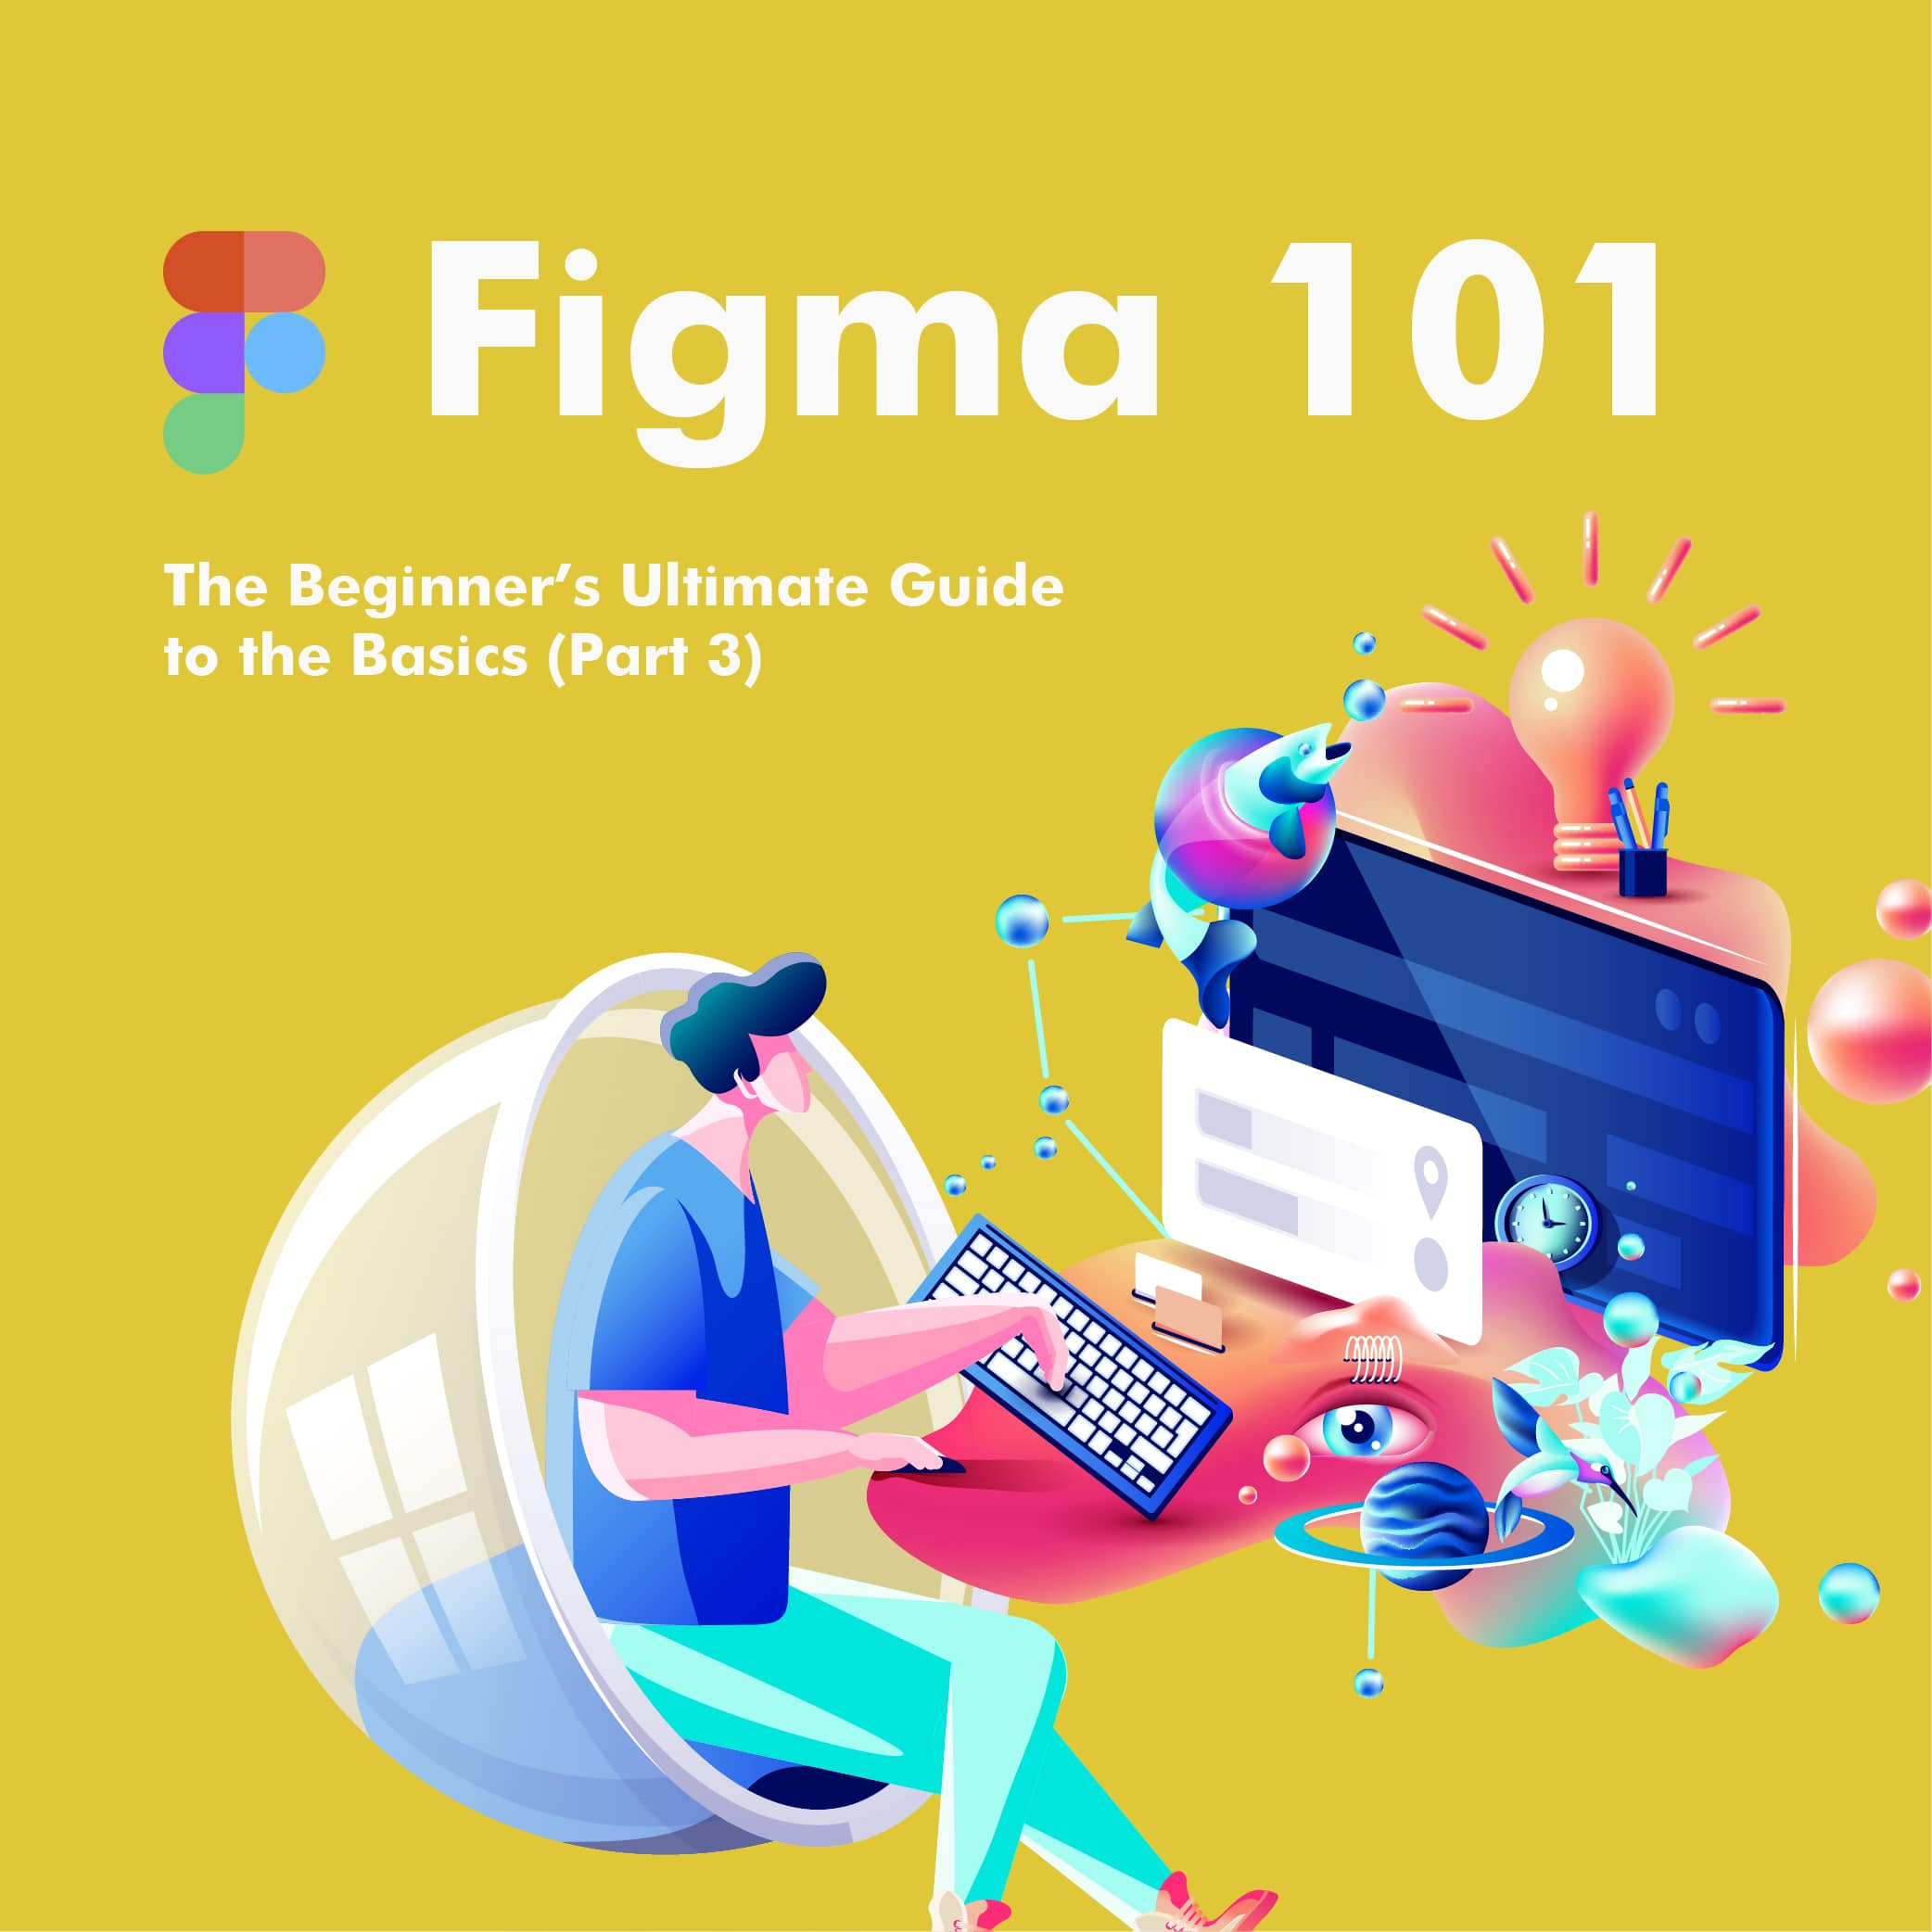 Figma 101 – The Beginner's Ultimate Guide to the Basics (Part 3)